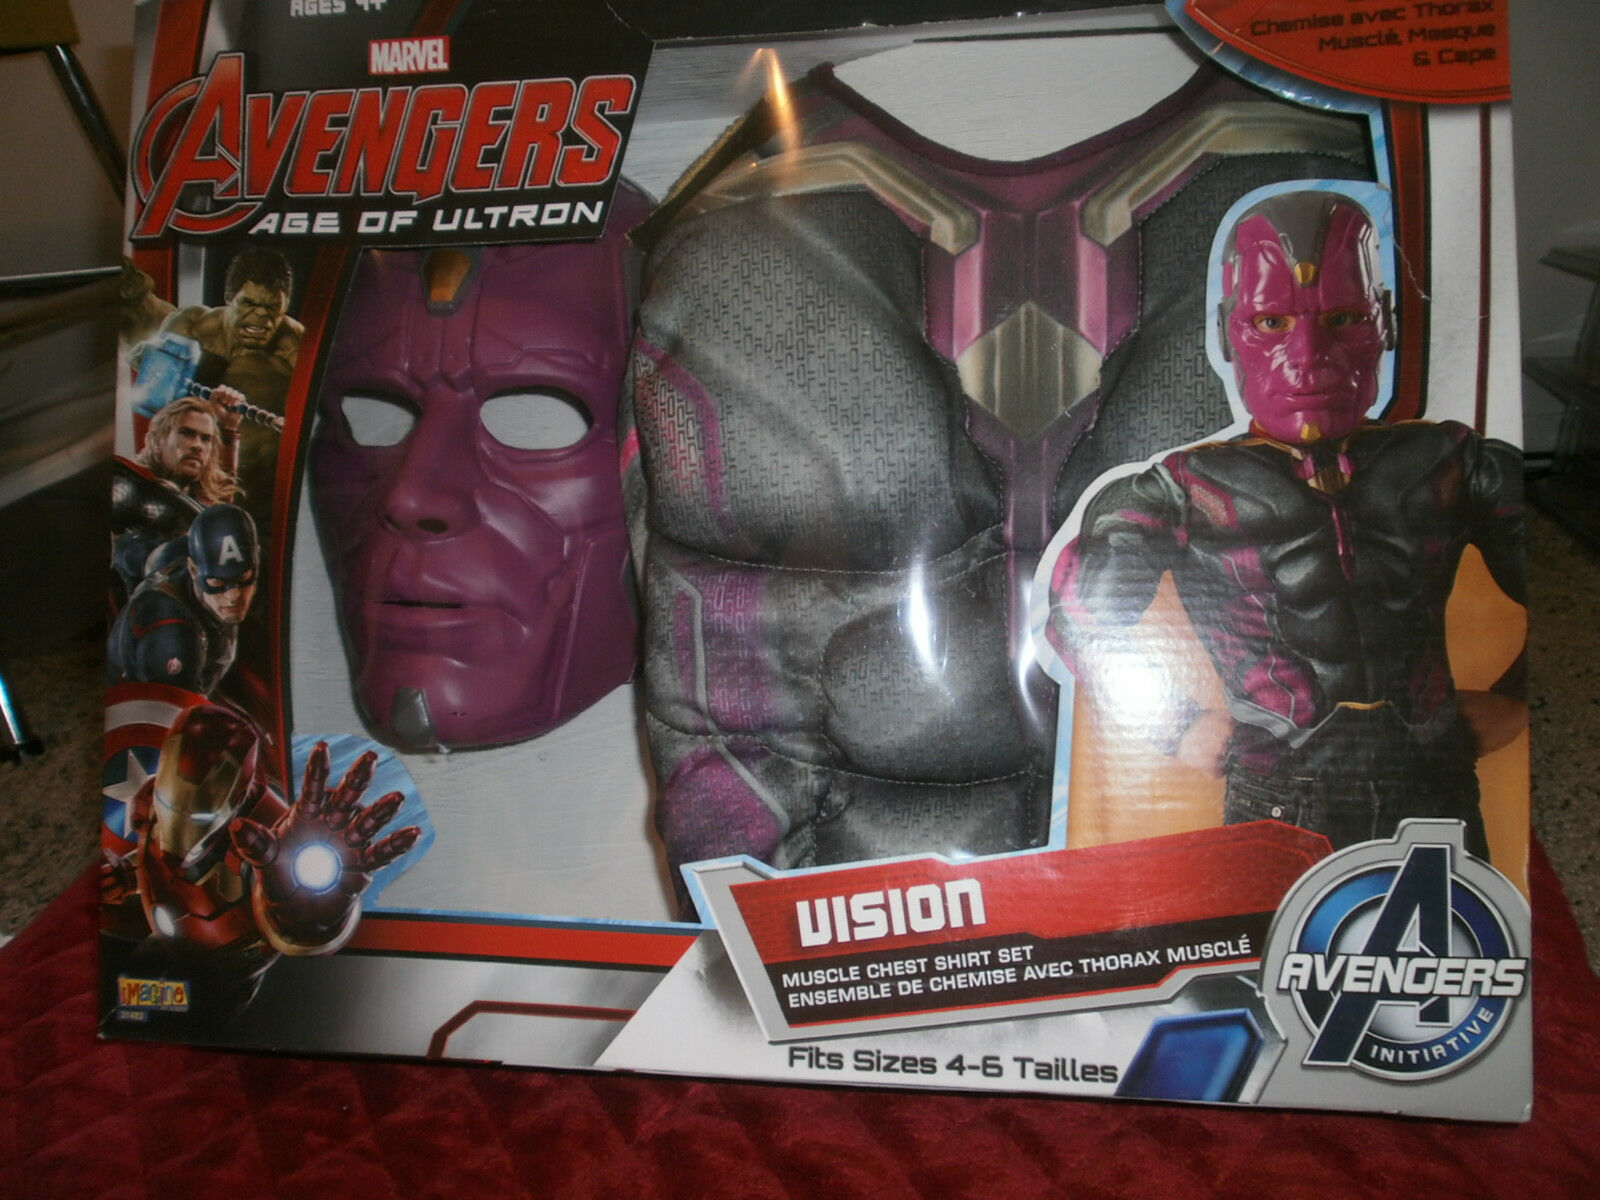 Marvel Avengers Age of Ultron Vision Costume Muscle Chest Shirt Set ...